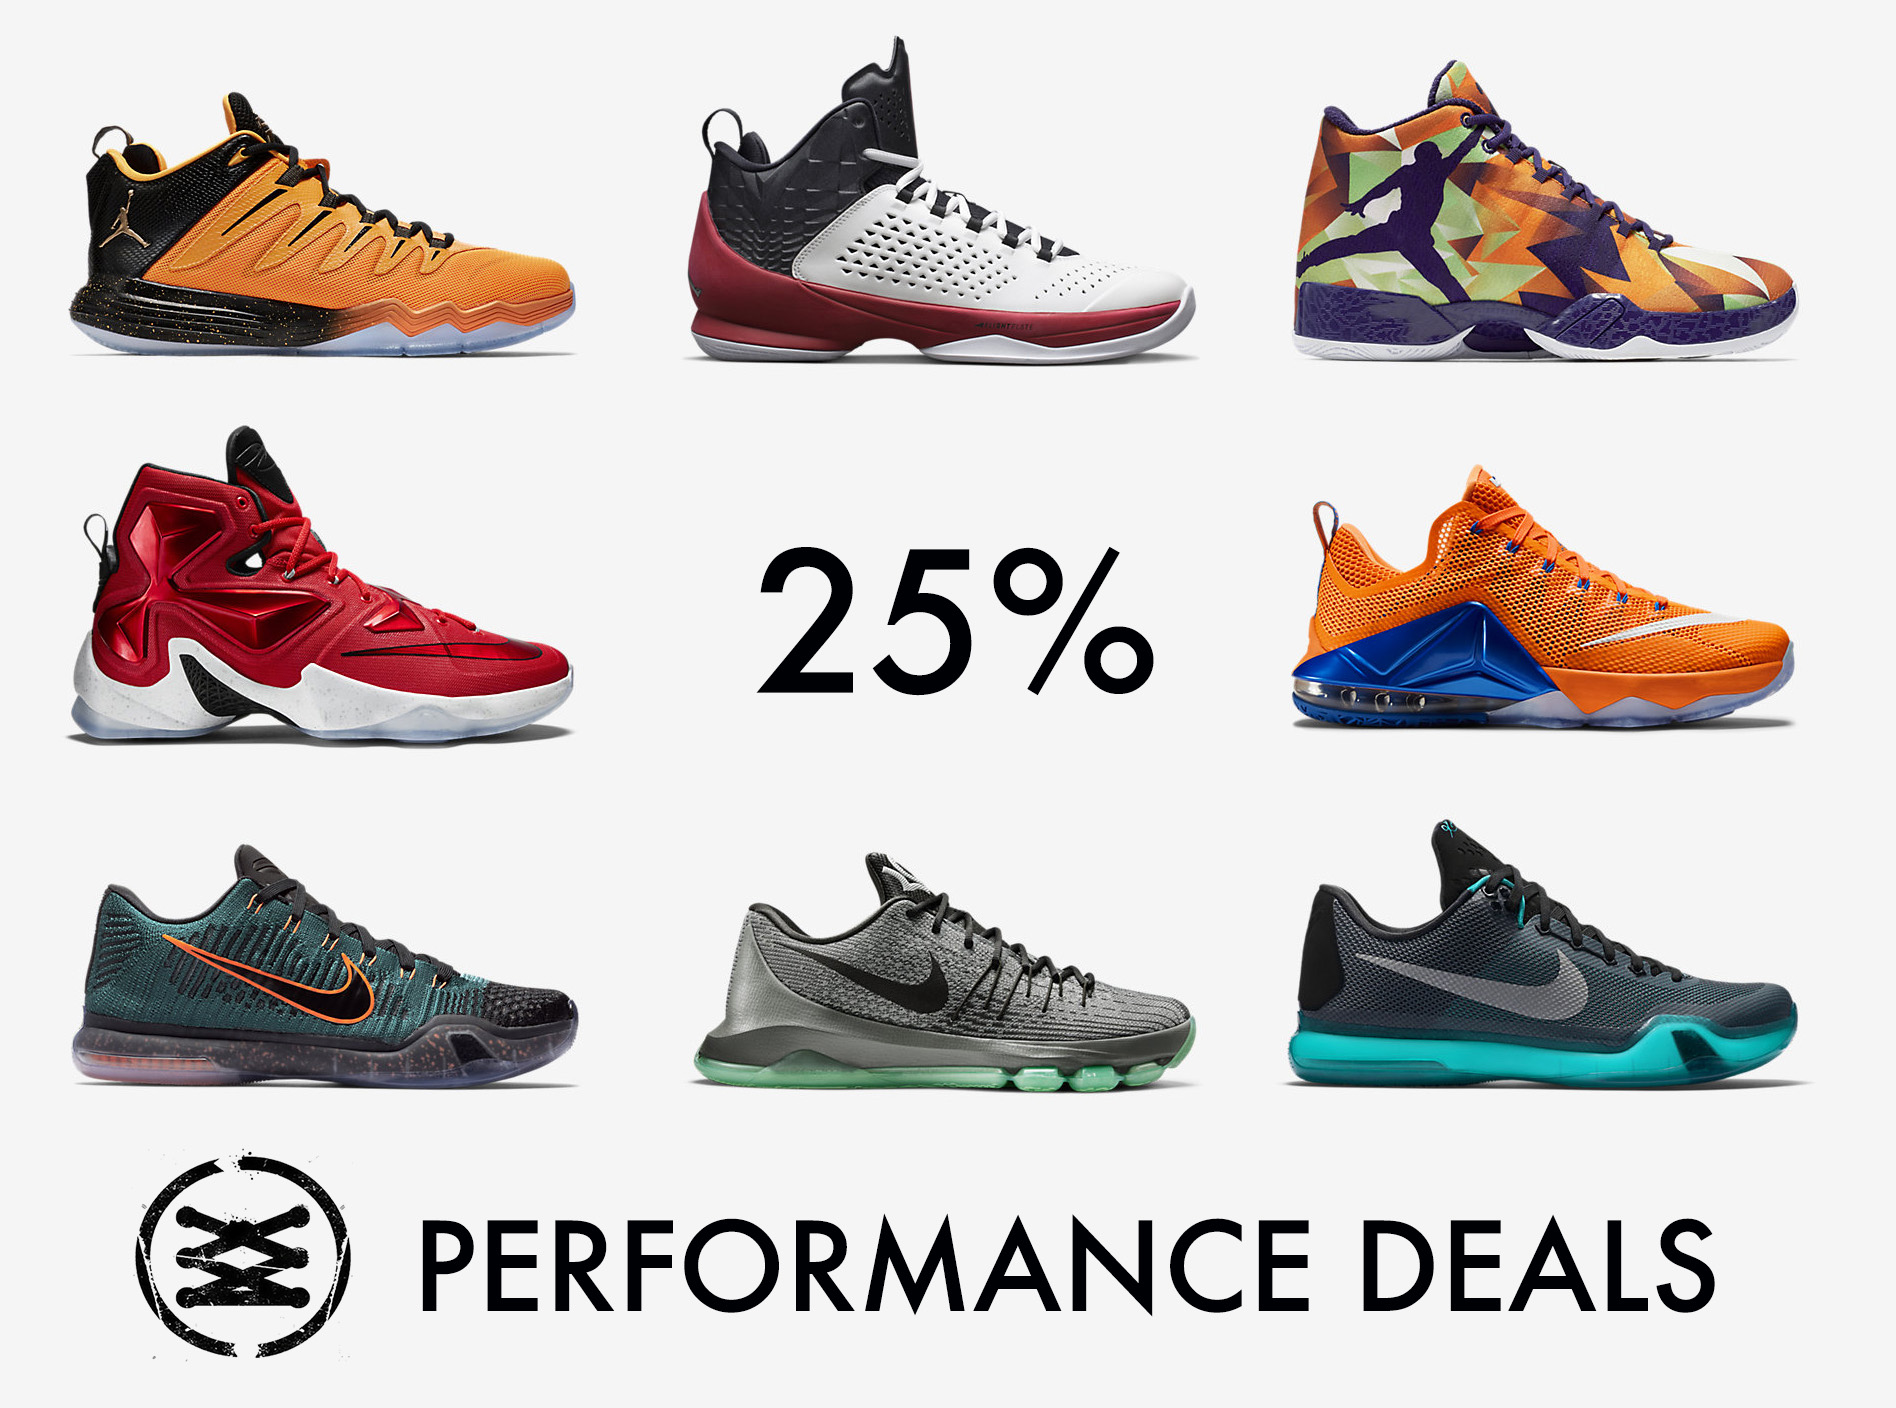 573b9b1da6ac9 Basketball   Jordan Brand   Kicks On Court   Nike   Performance Deals ...